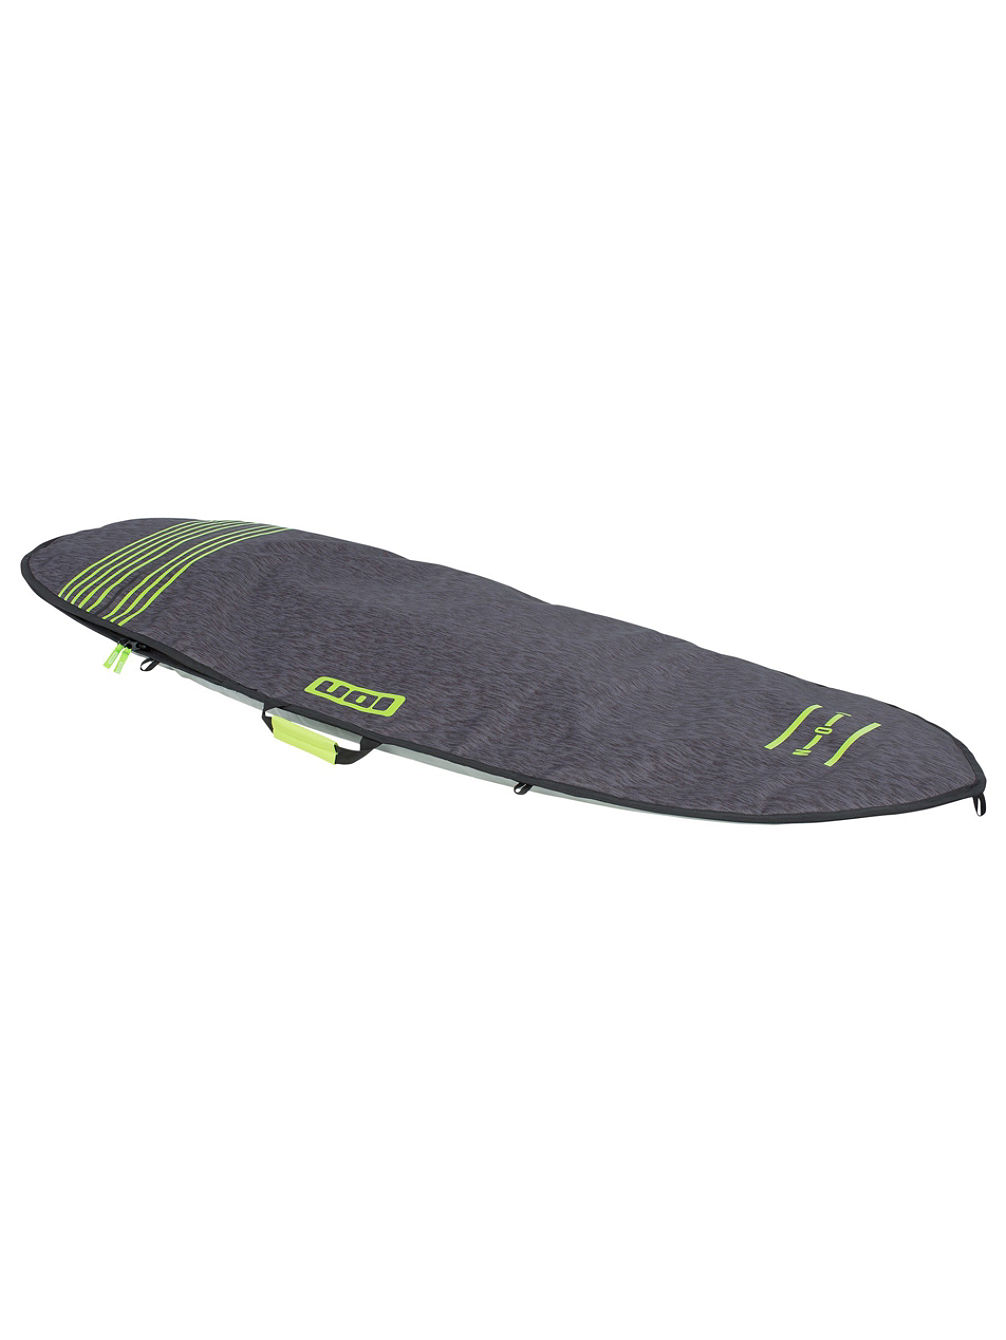 Surf Core 6'5 Surfboard Bag